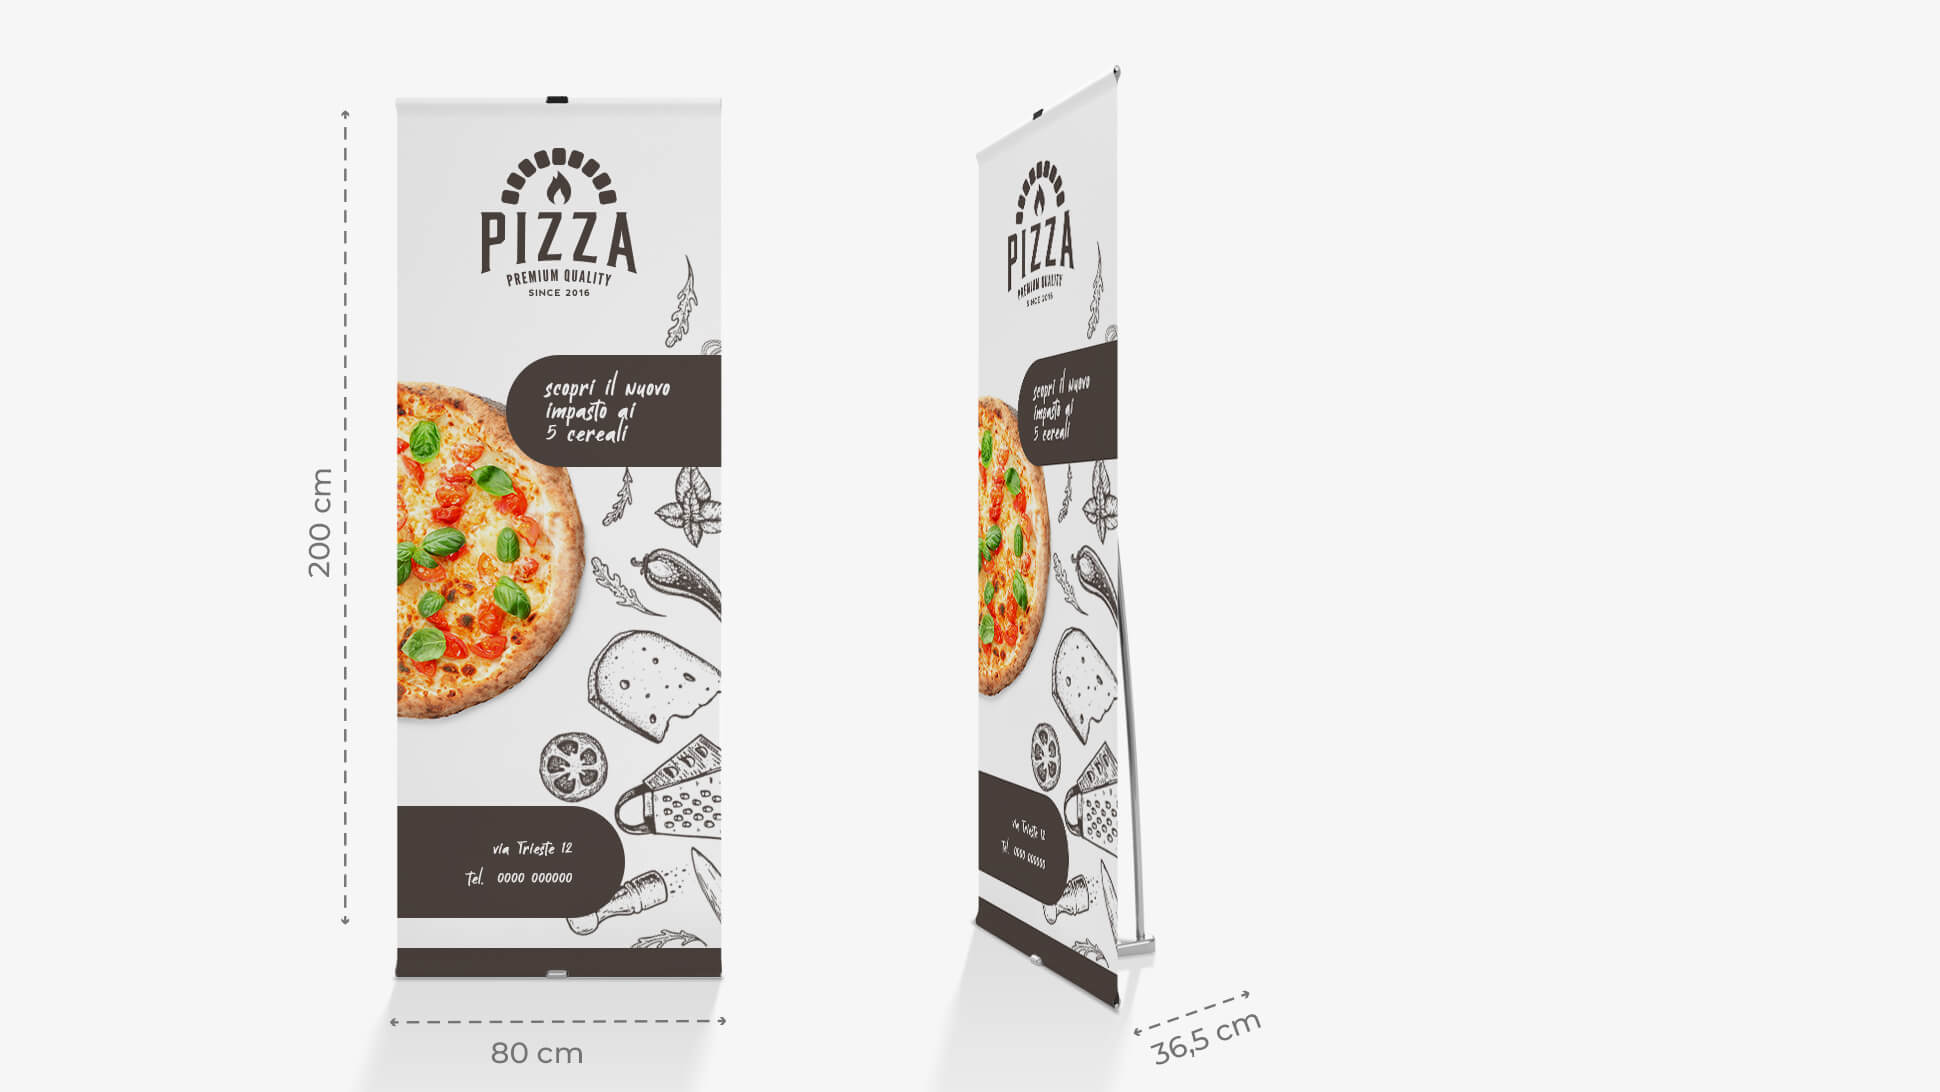 Roll Up Mitico con grafica pizzeria | tictac.it